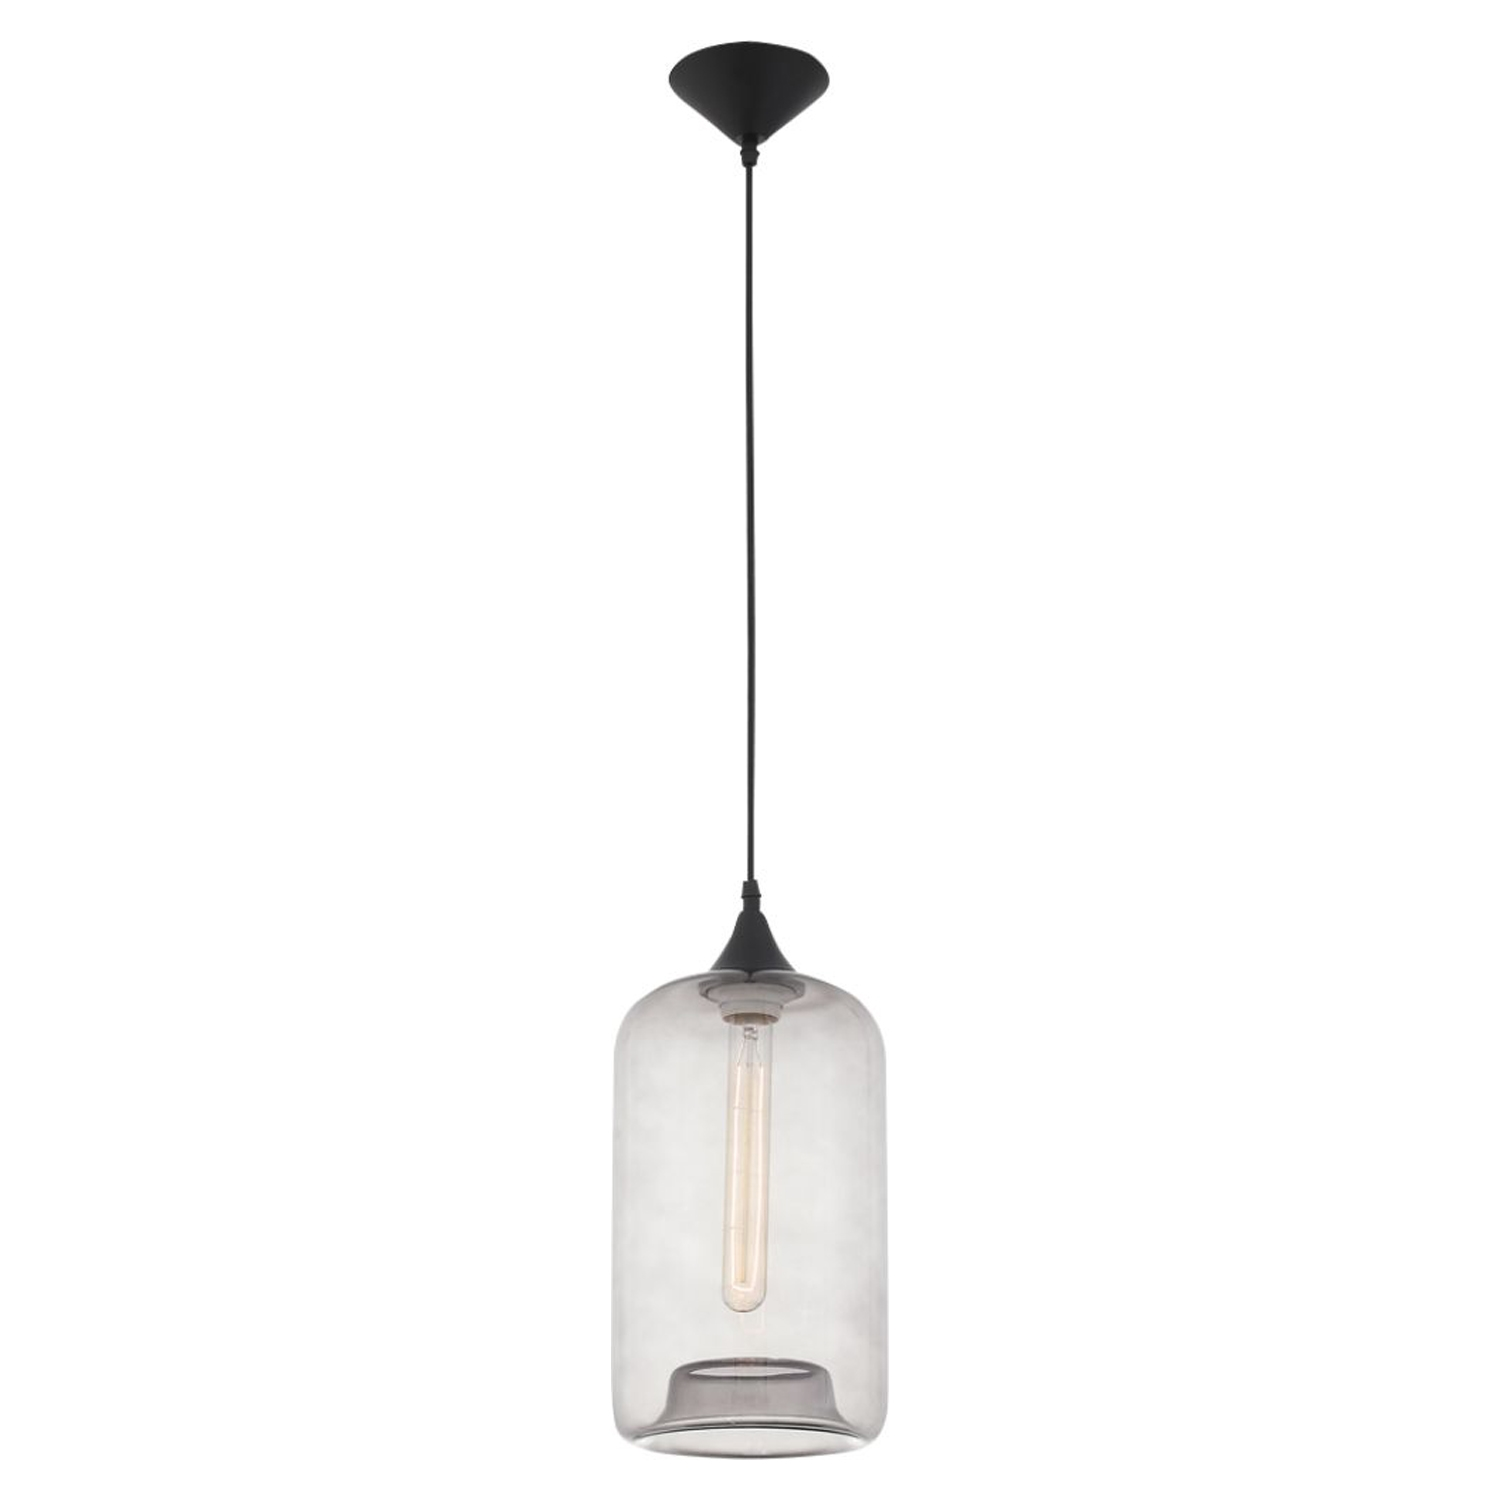 Werner Pendant Light - Gray - NYEK-225557